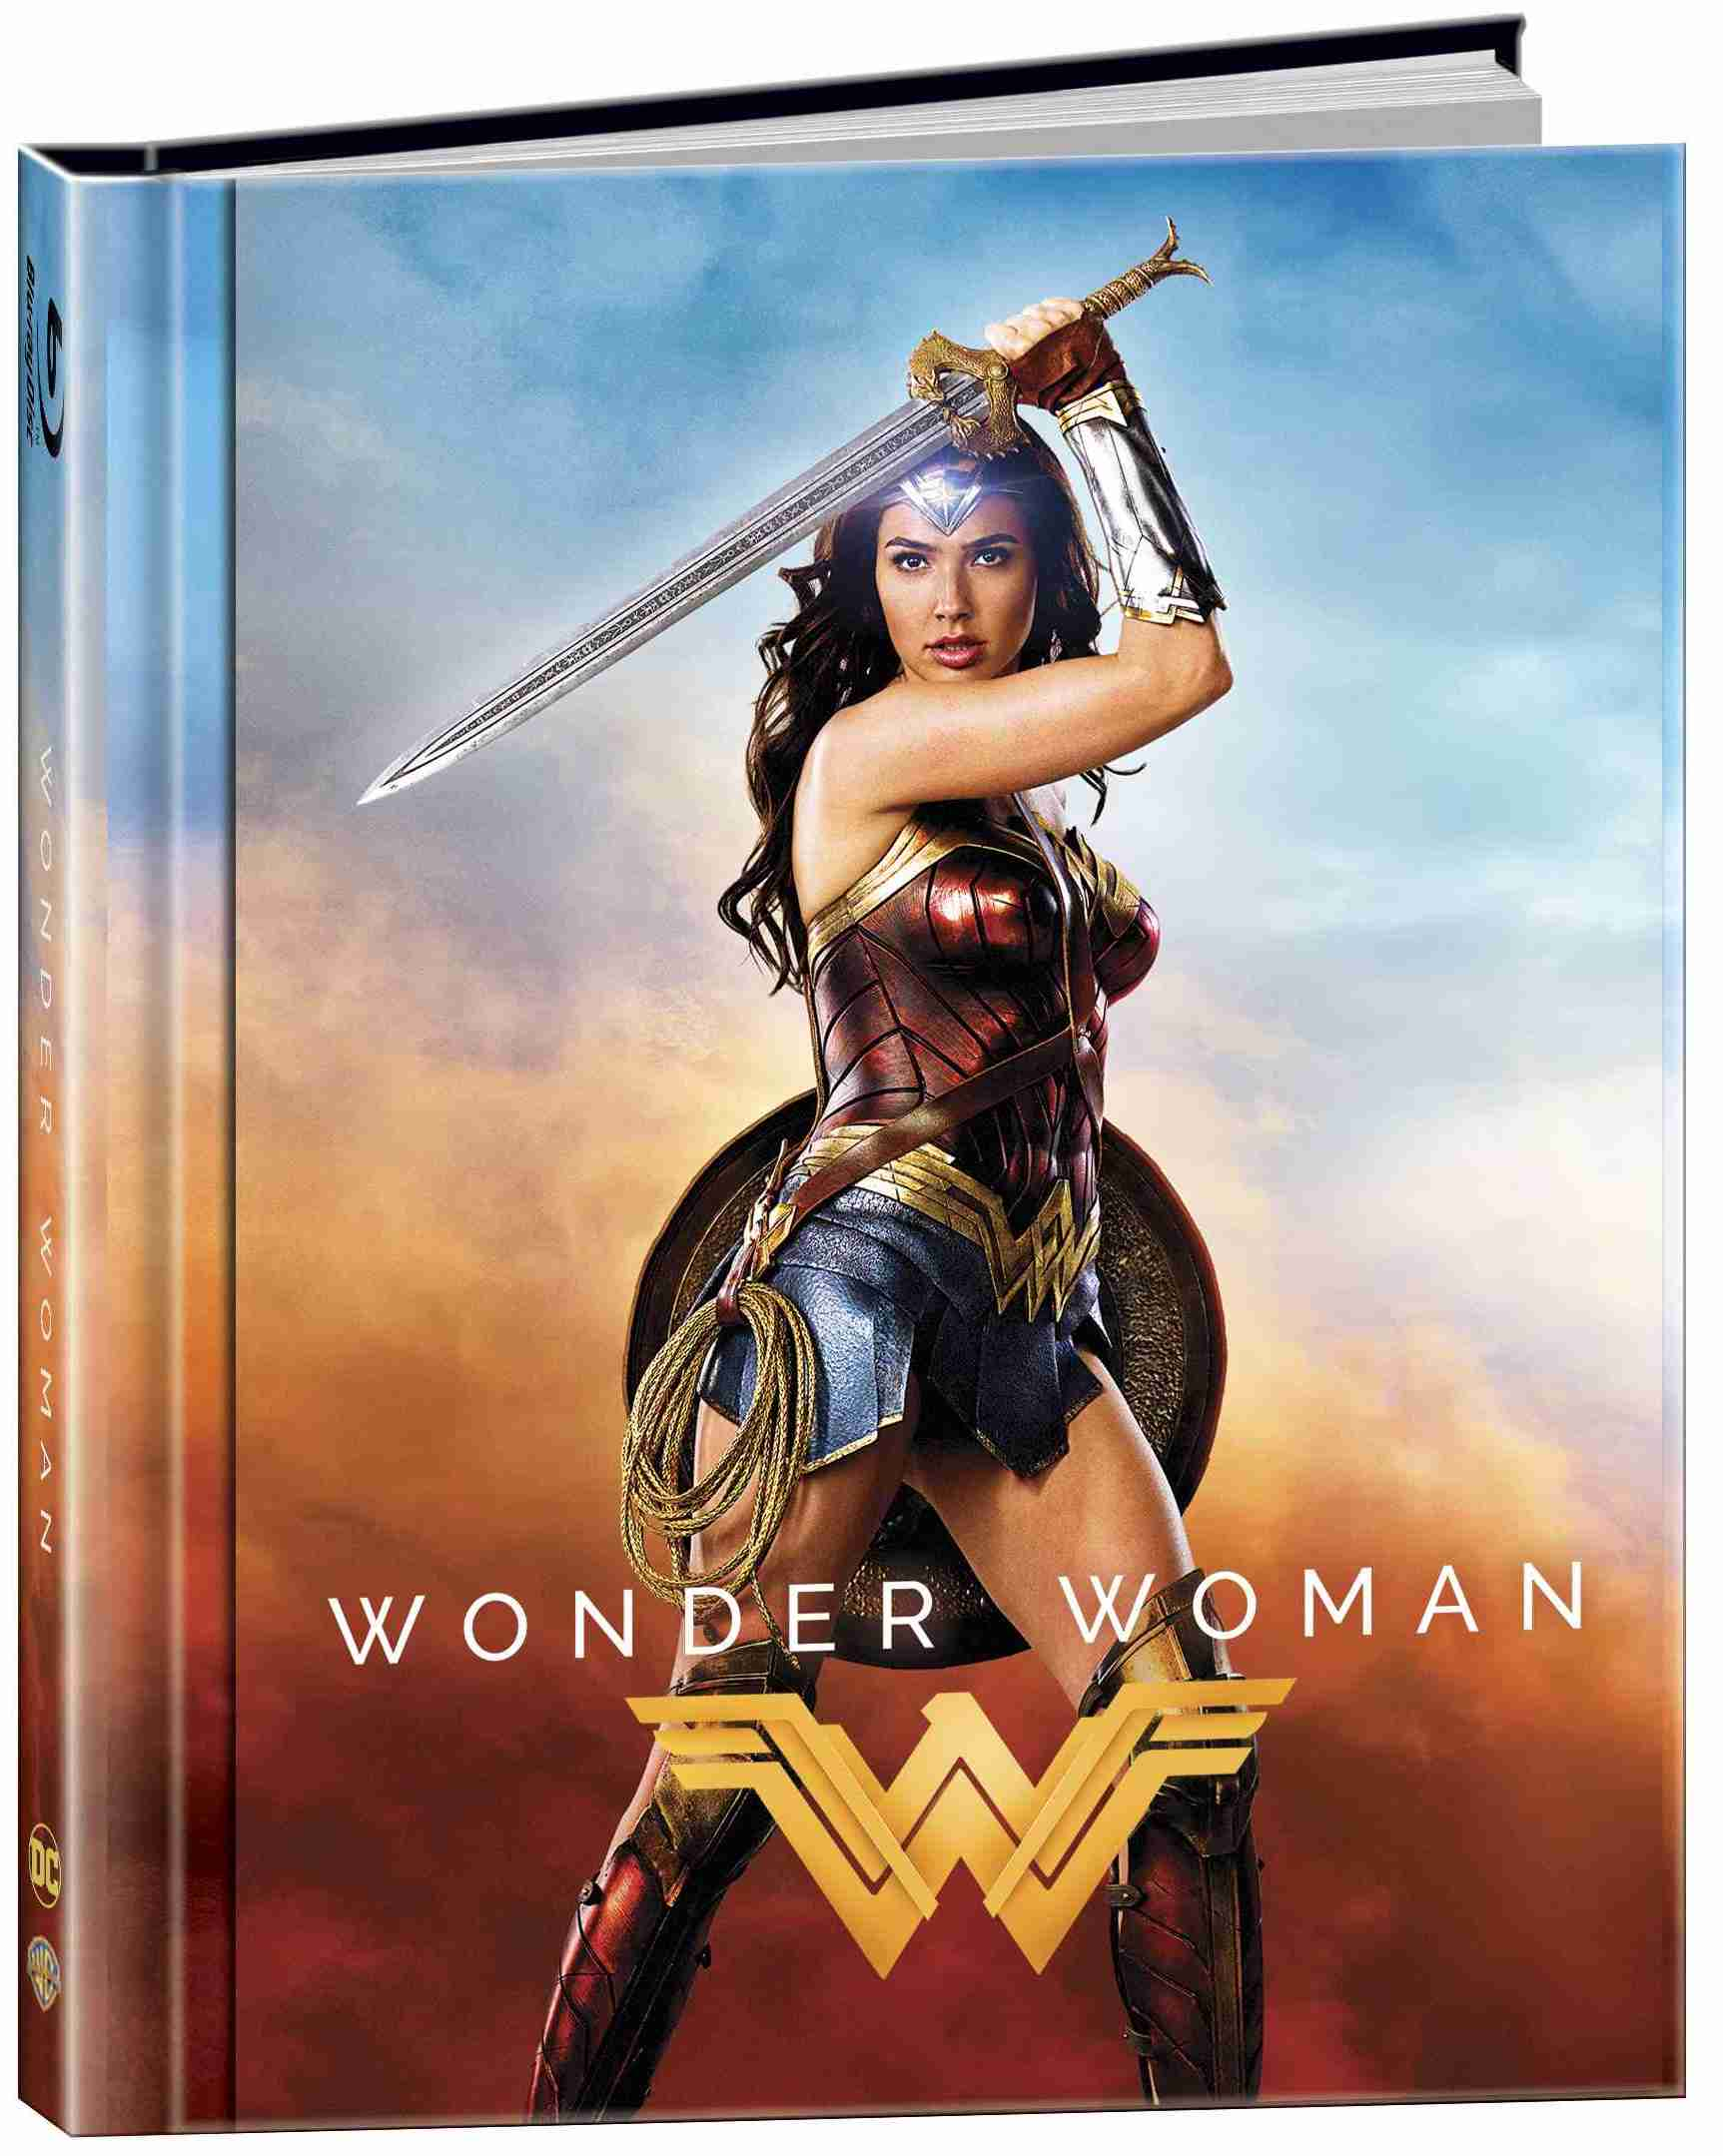 WONDER WOMAN - Blu-ray 3D + 2D DIGIBOOK (2 BD)